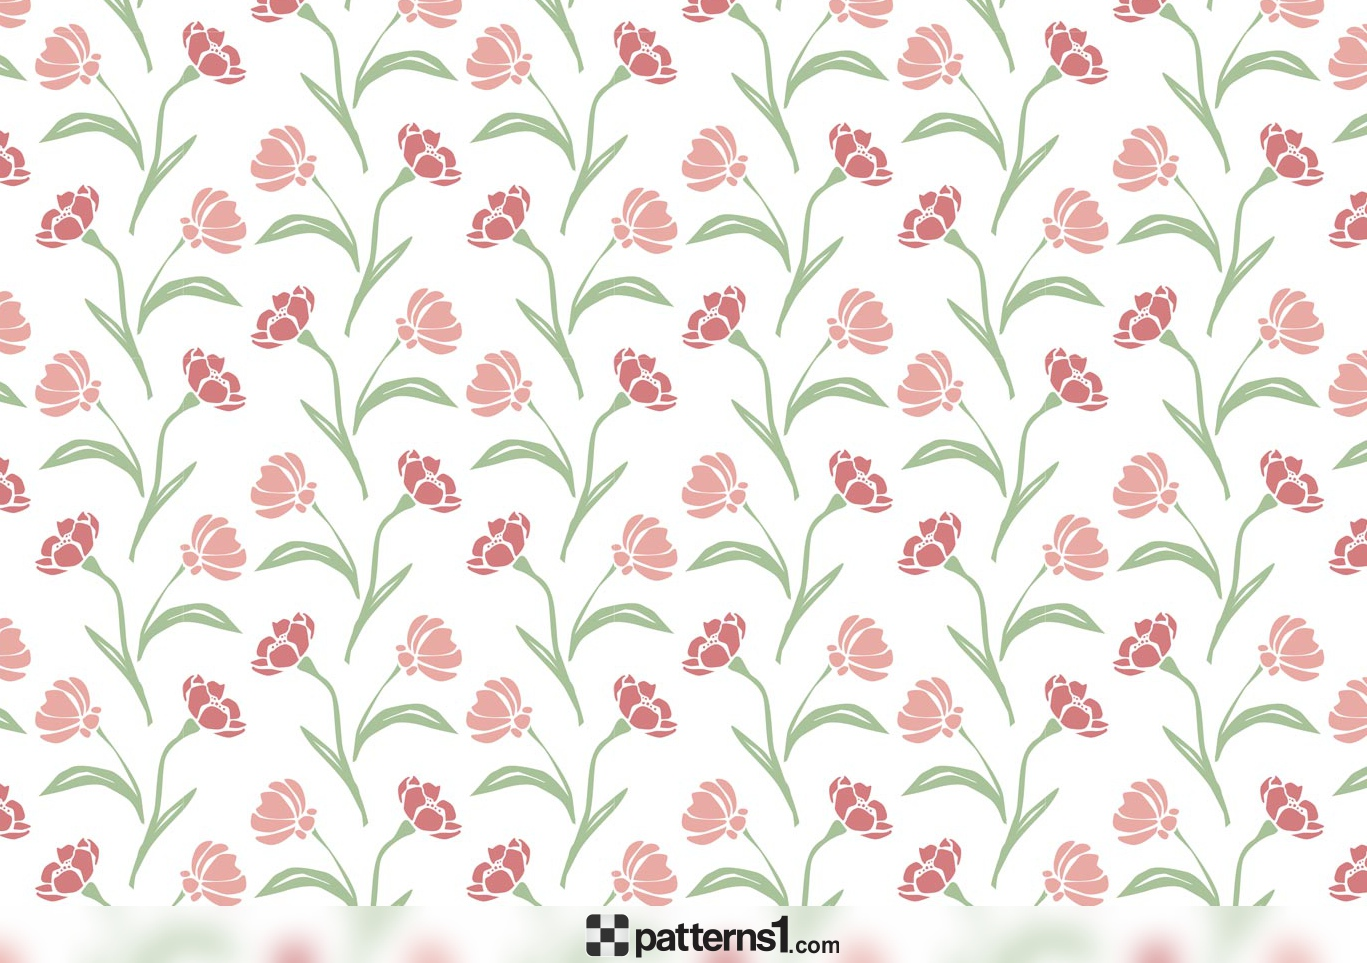 Clipart background patterns svg black and white library Elegant Flowers Clipart Pattern Background | Vector Pattern Design ... svg black and white library